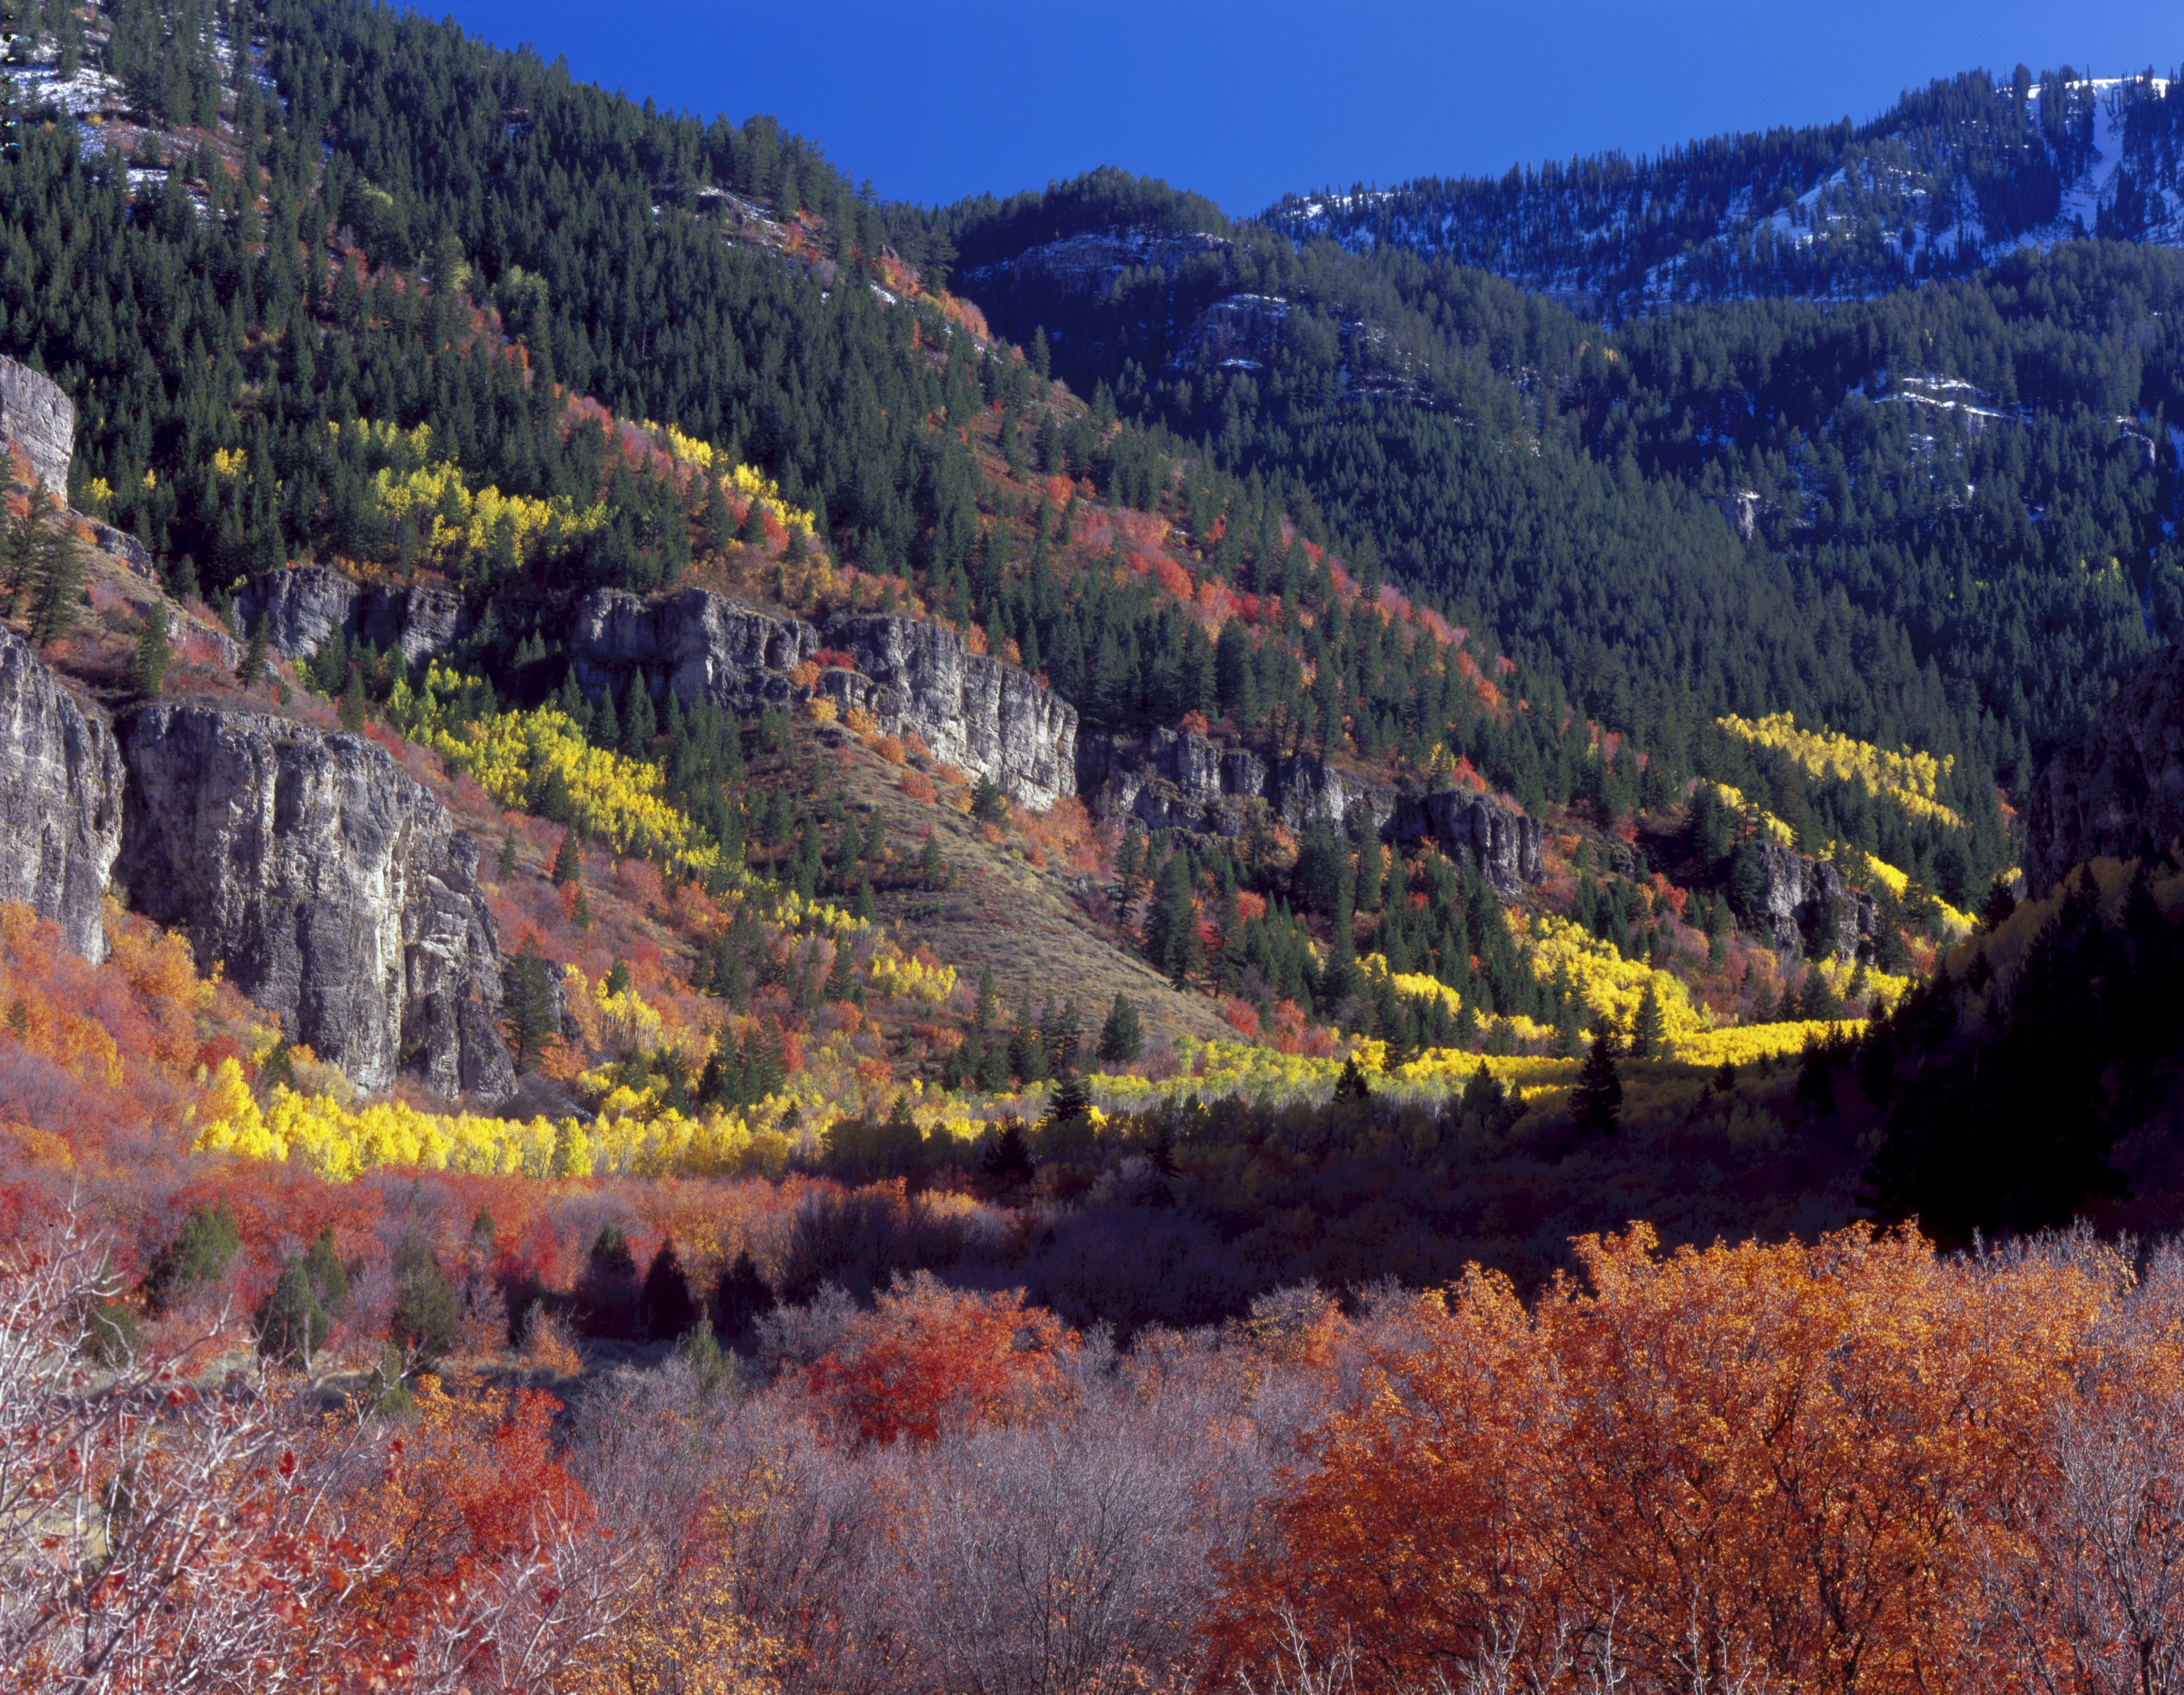 Maples, aspen, and conifers in autumn, Mill Hollow in Logan Canyon, Bear River Range, Wasatch Mountains, Uinta-Wasatch-Cache National Forest, Utah